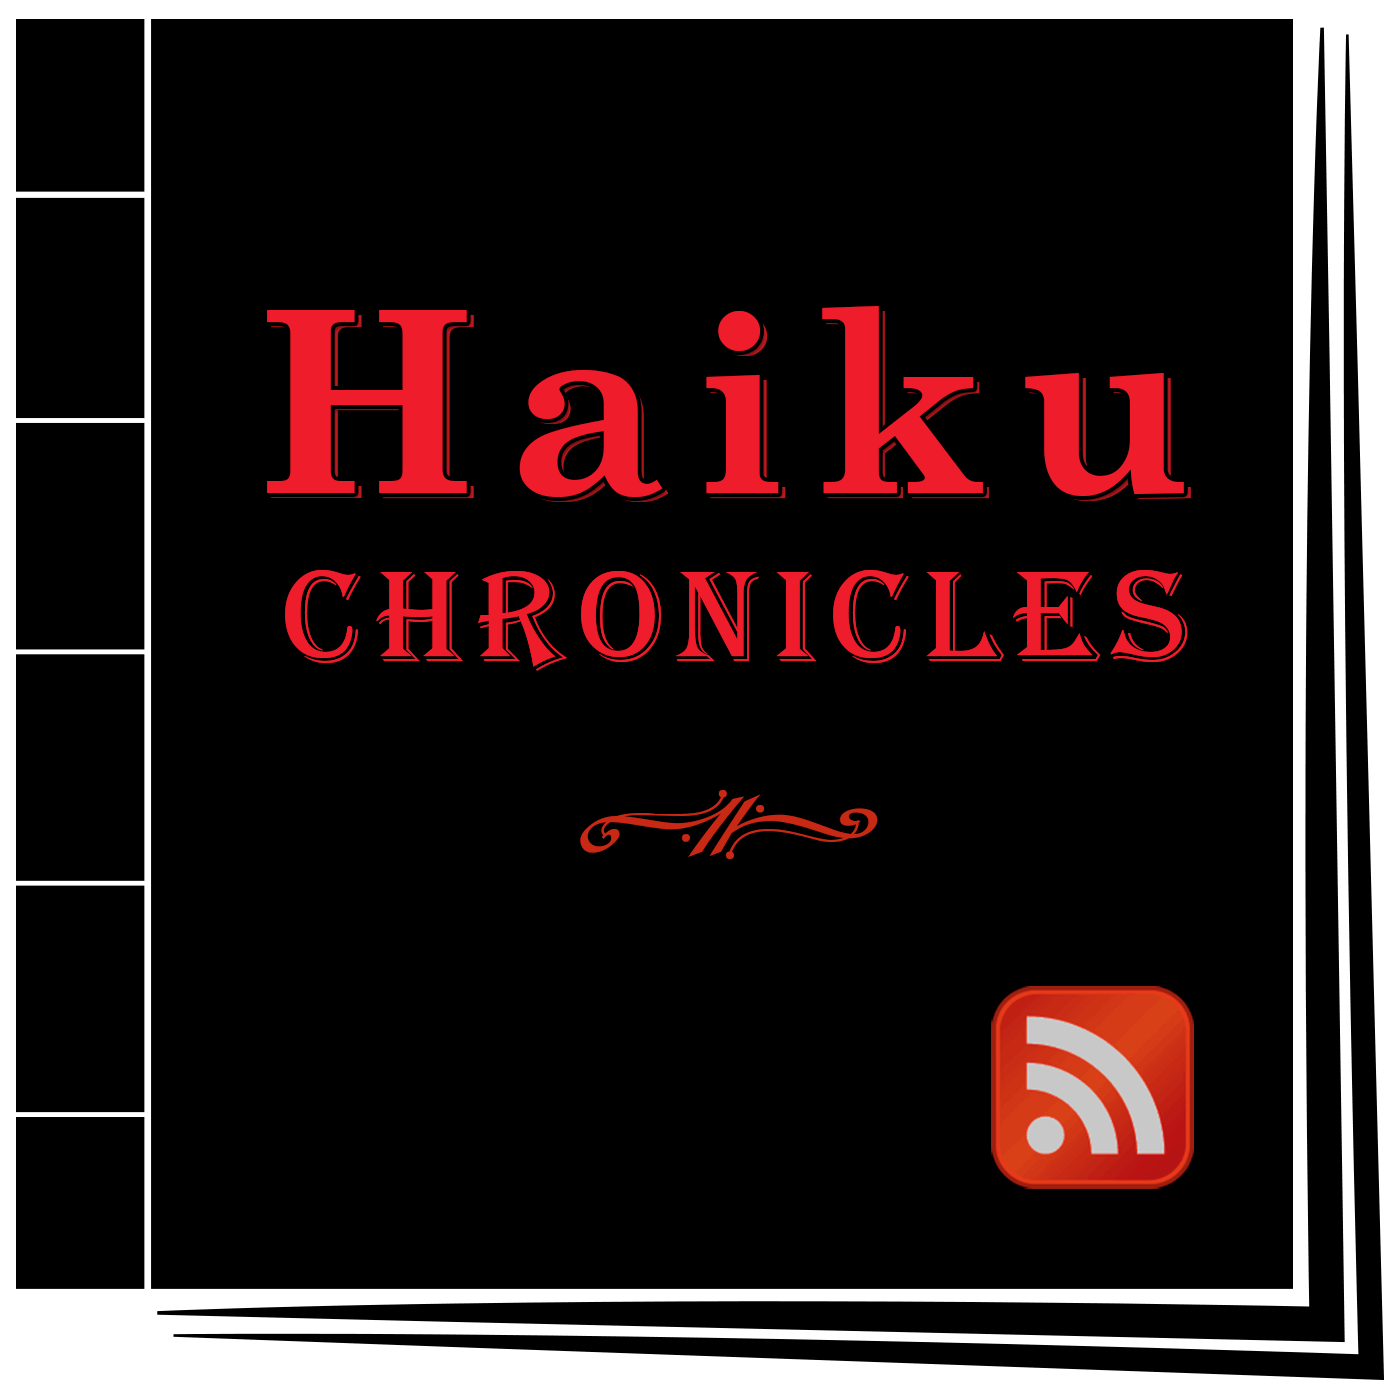 Support Poetry - A portion of all proceeds from our books and products are used to fund and support the free educational podcast, Haiku Chronicles.Help support this podcast!